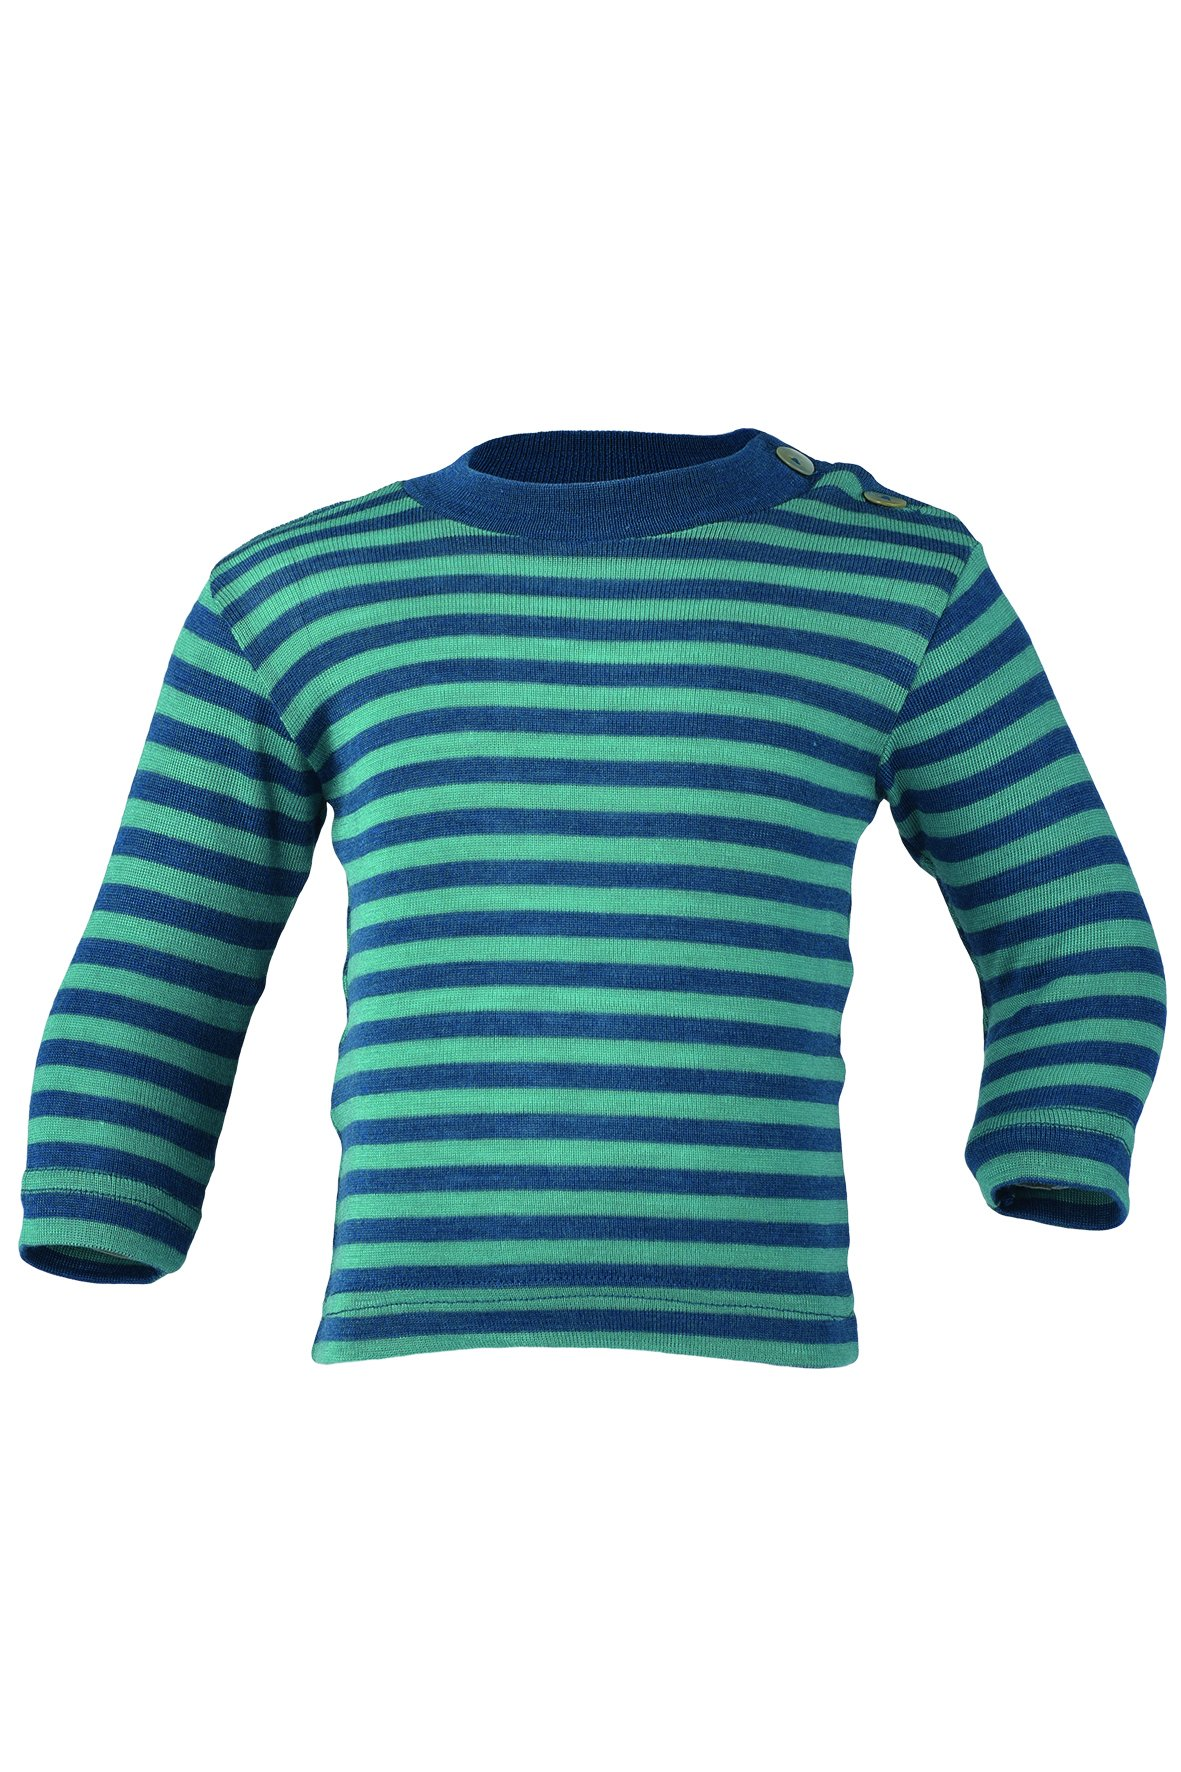 Engel 70% Organic Wool 30% Silk Baby Shirt Long Sleeve Buttons on The Shoulder (98/104 (2T-3T), Light Ocean/Blue) by Engel